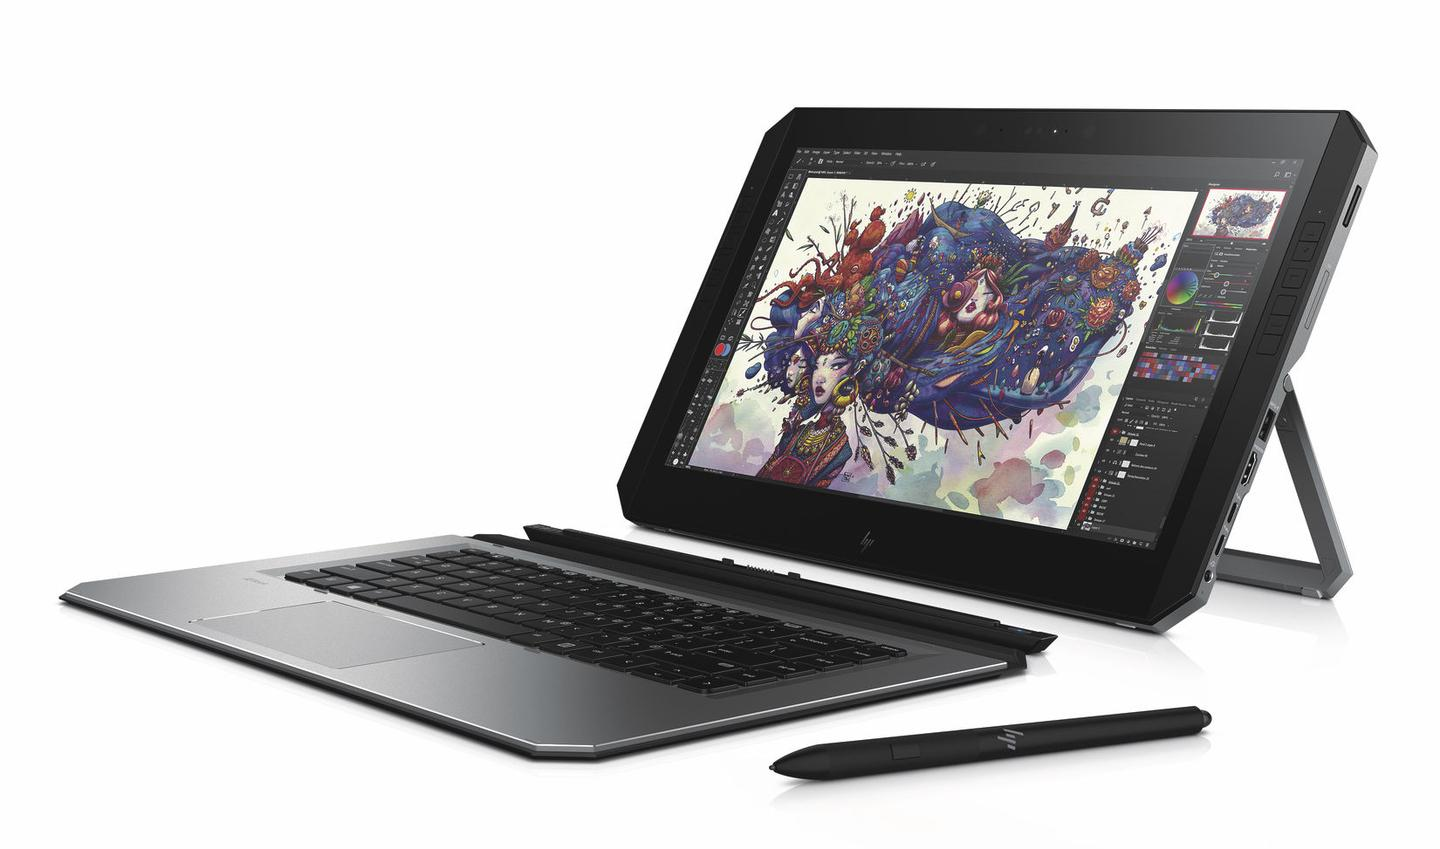 HPis calling theZBook x2the world's first detachable PC workstation